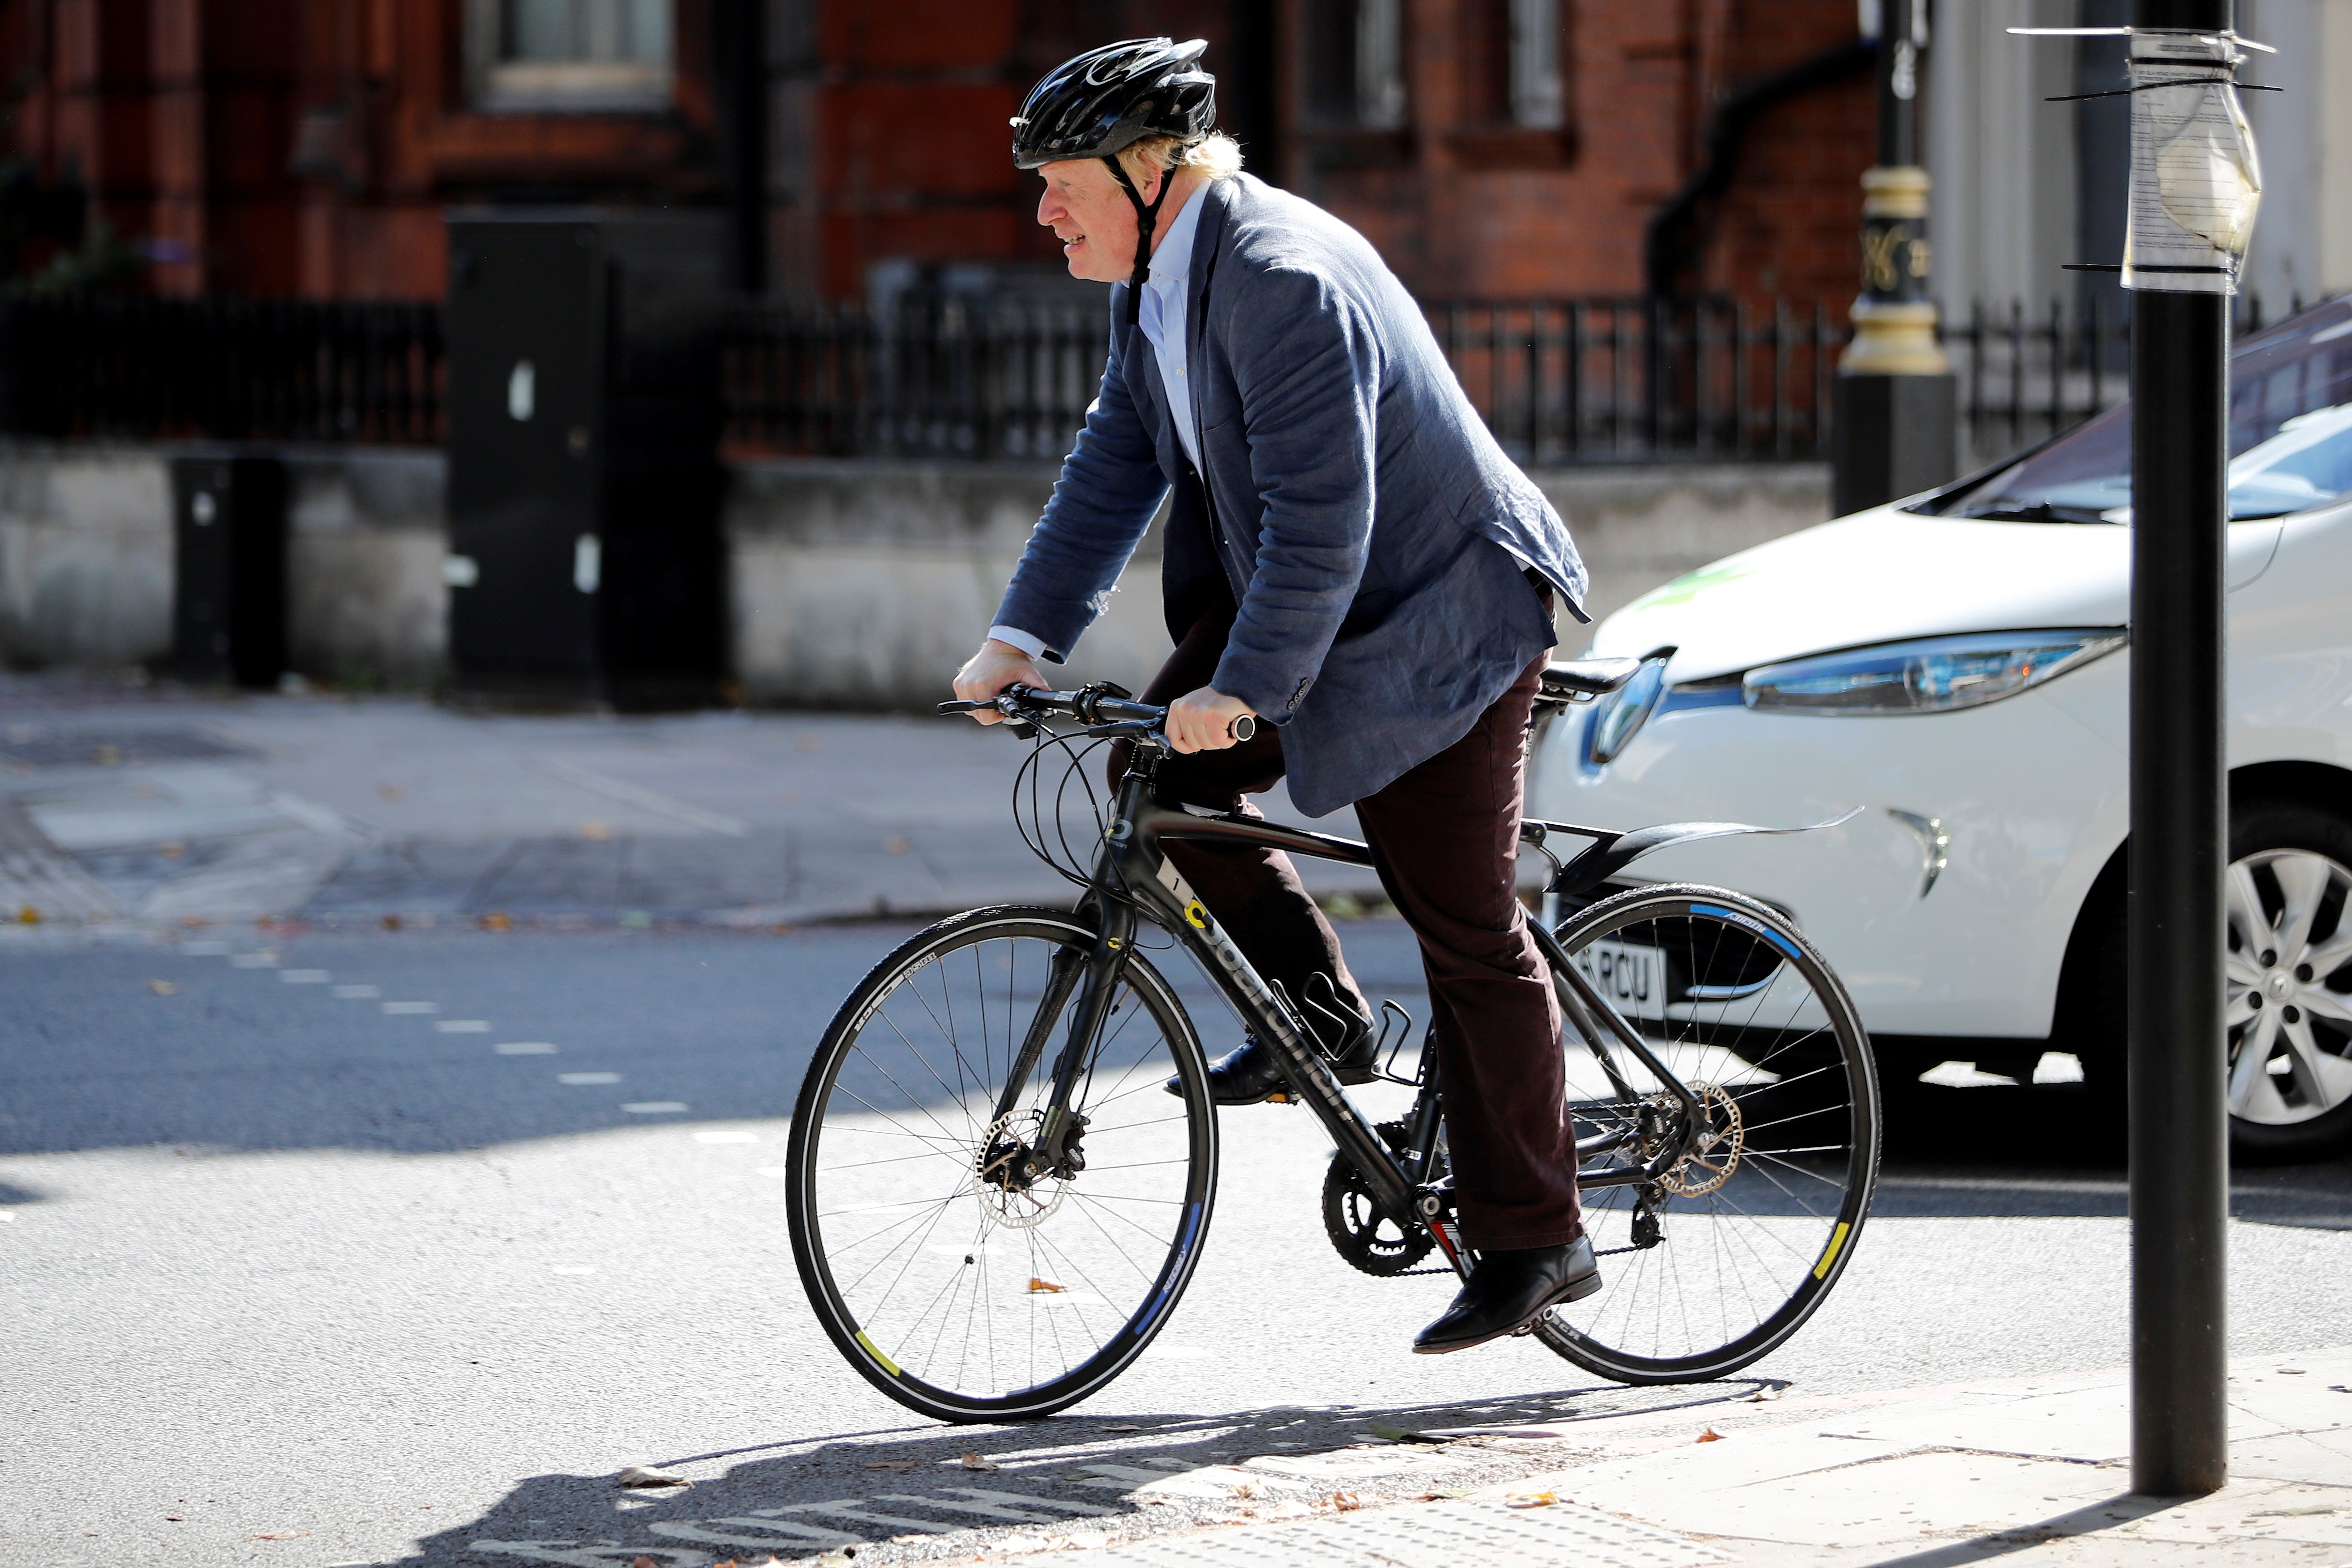 Boris Johnson's bike ride has made it harder for police to enforce rules, poll finds